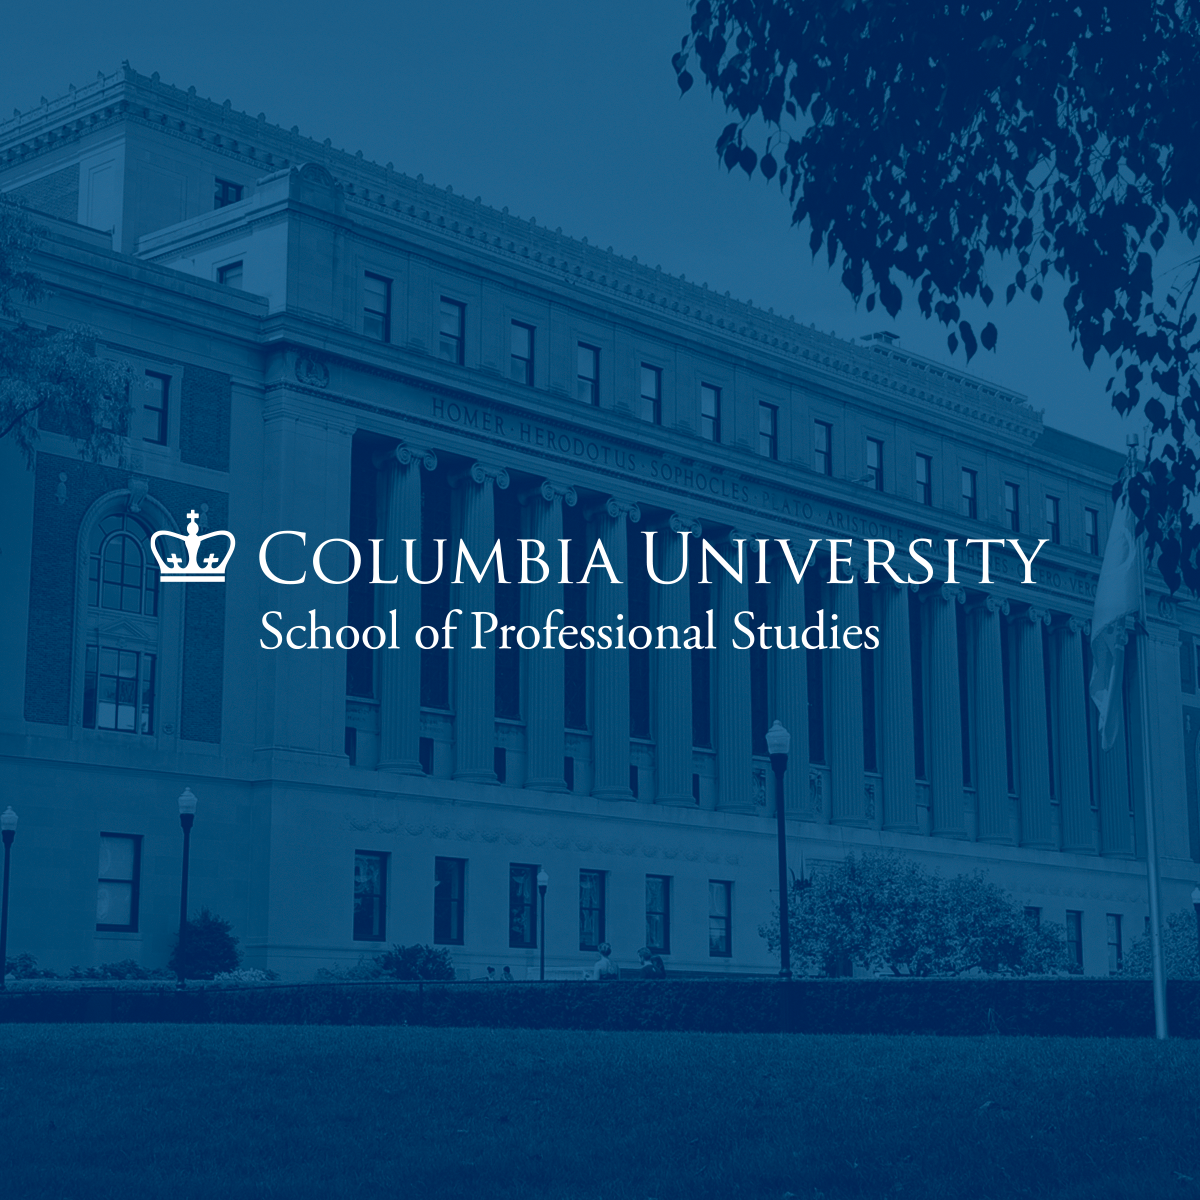 012 Essay Example Columbia University 18sps145 Opengraph Sps01 Wonderful Application Tips Prompt Supplement Examples Full